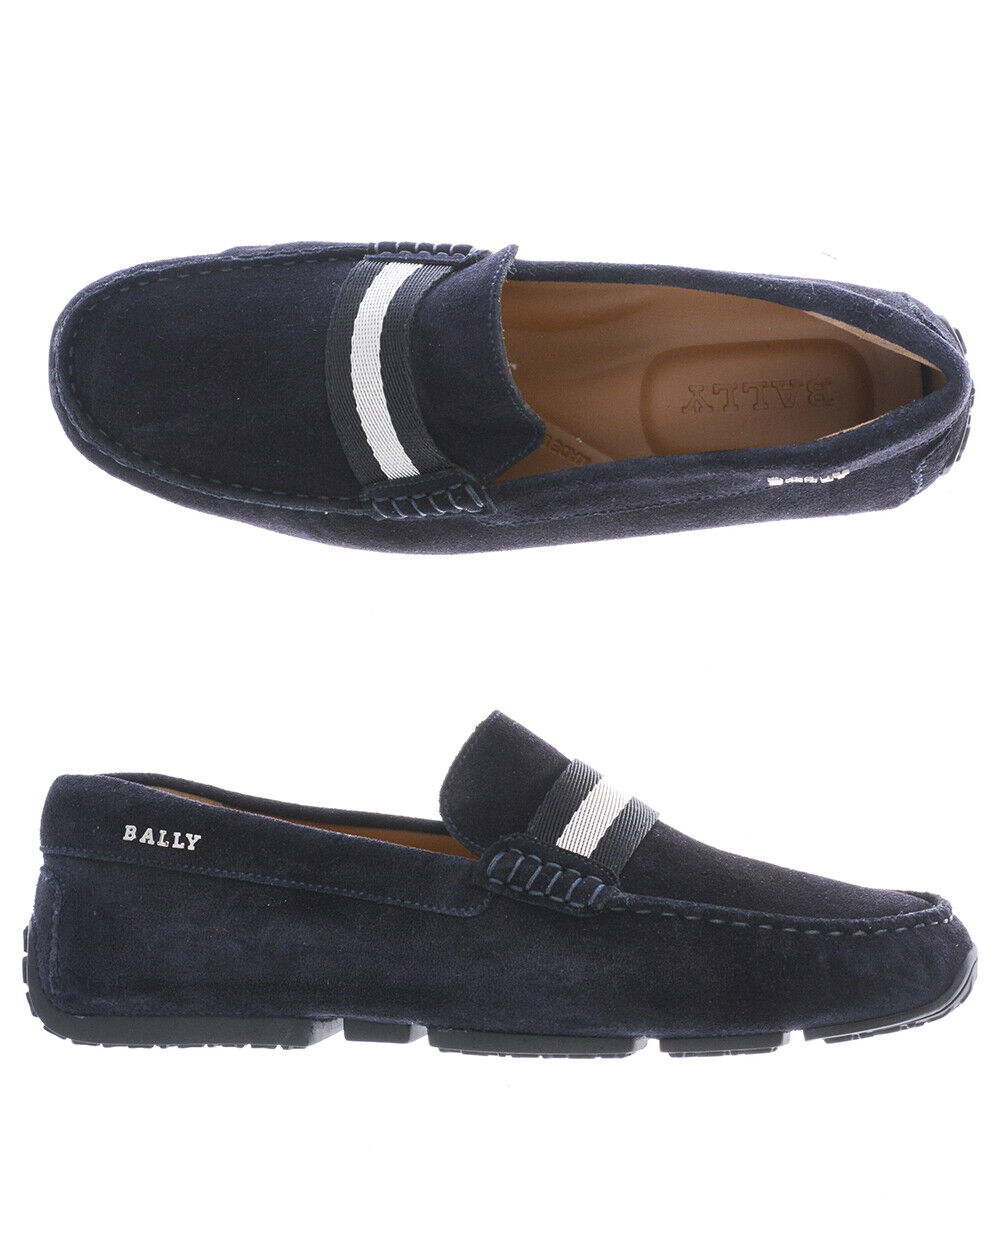 Mocassino Bally Moccasin chaussures PEARCE Pelle MADE IN ITALY hommes bleu 6206908 106